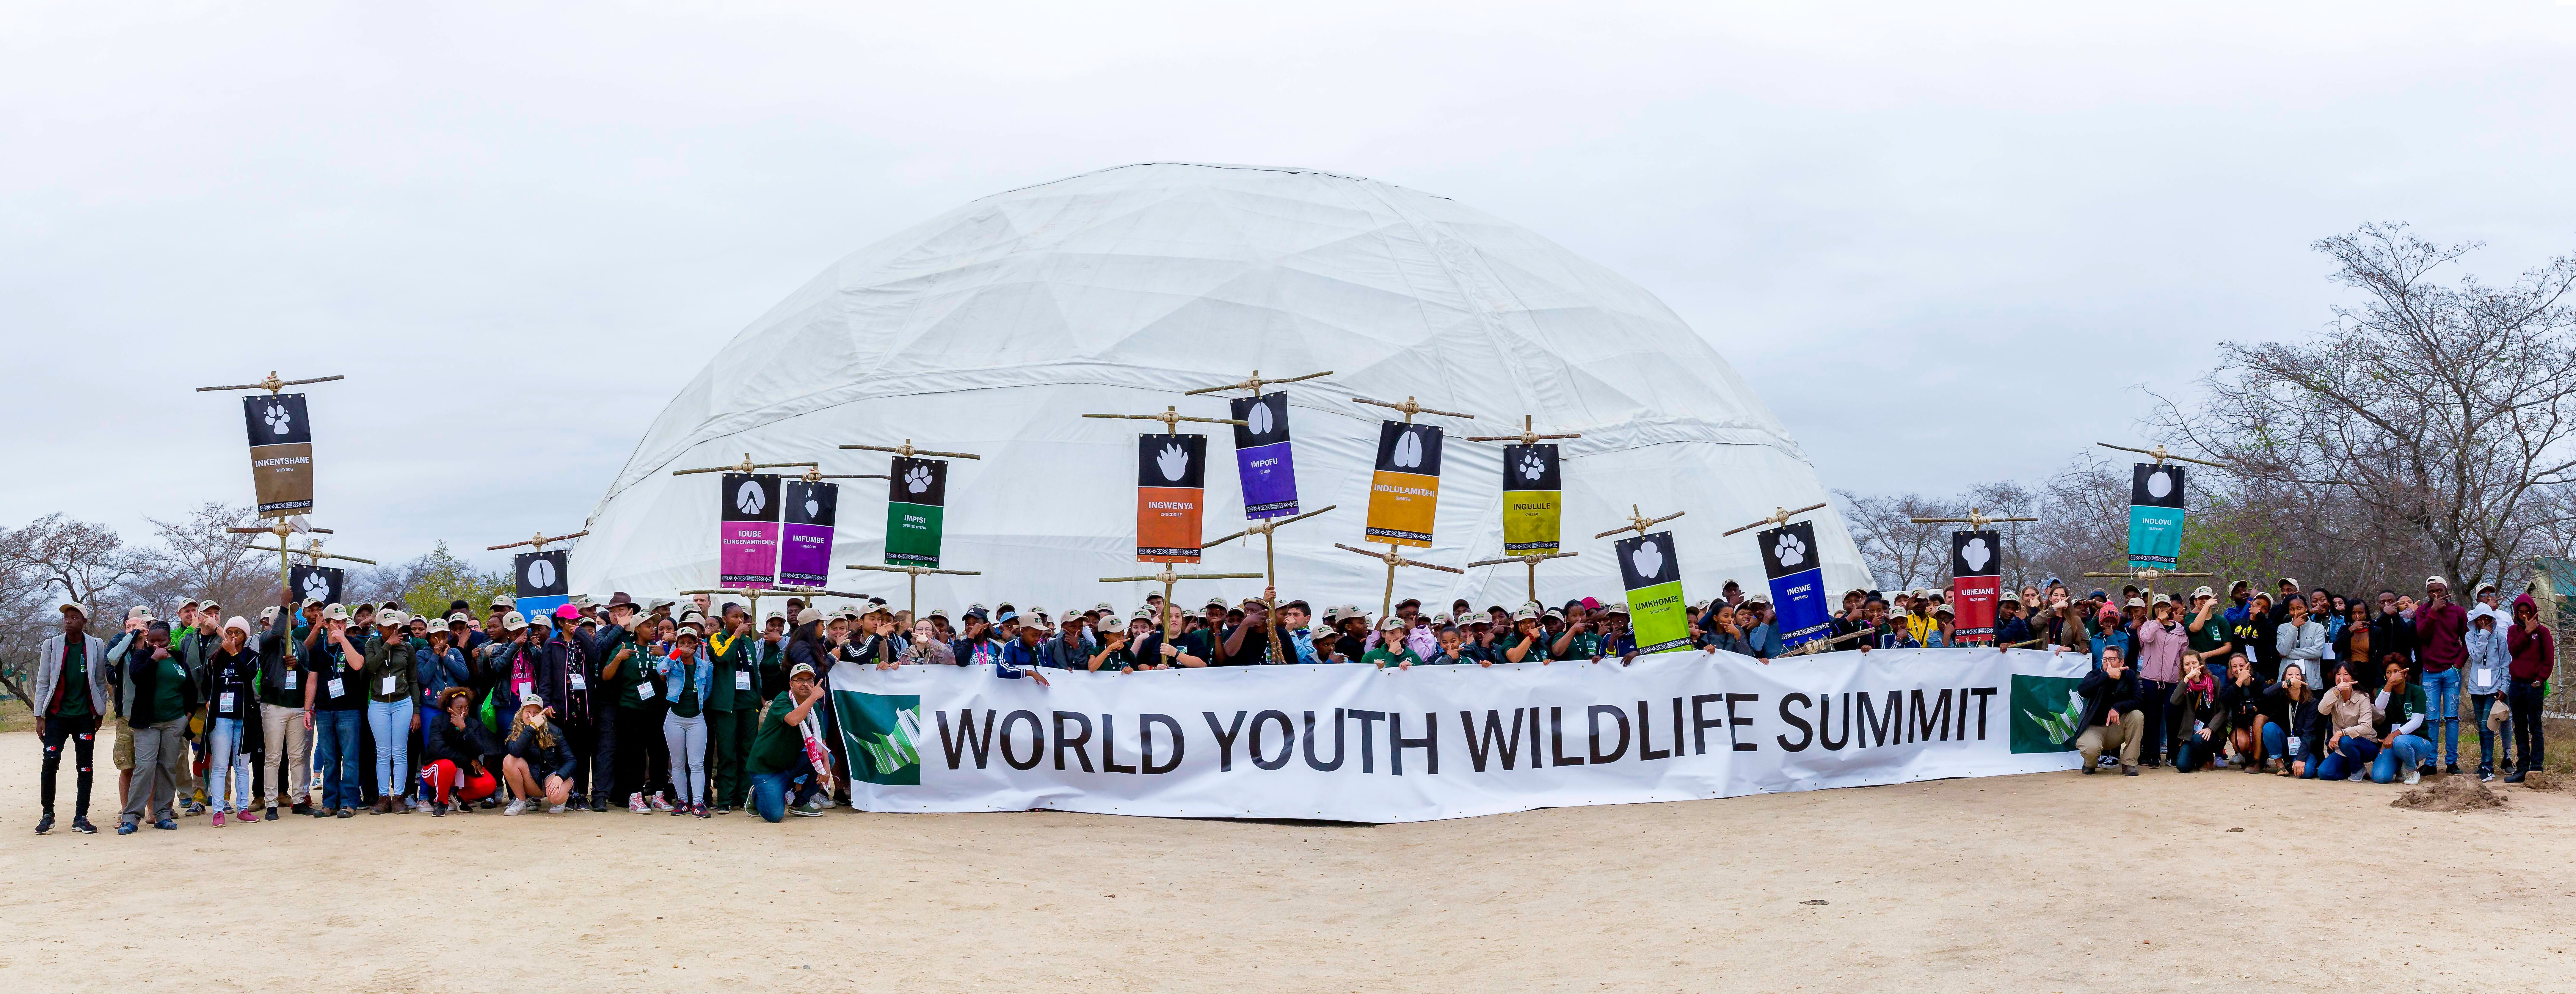 Image - Roehampton student attends World Youth Wildlife Summit as young conservation leader